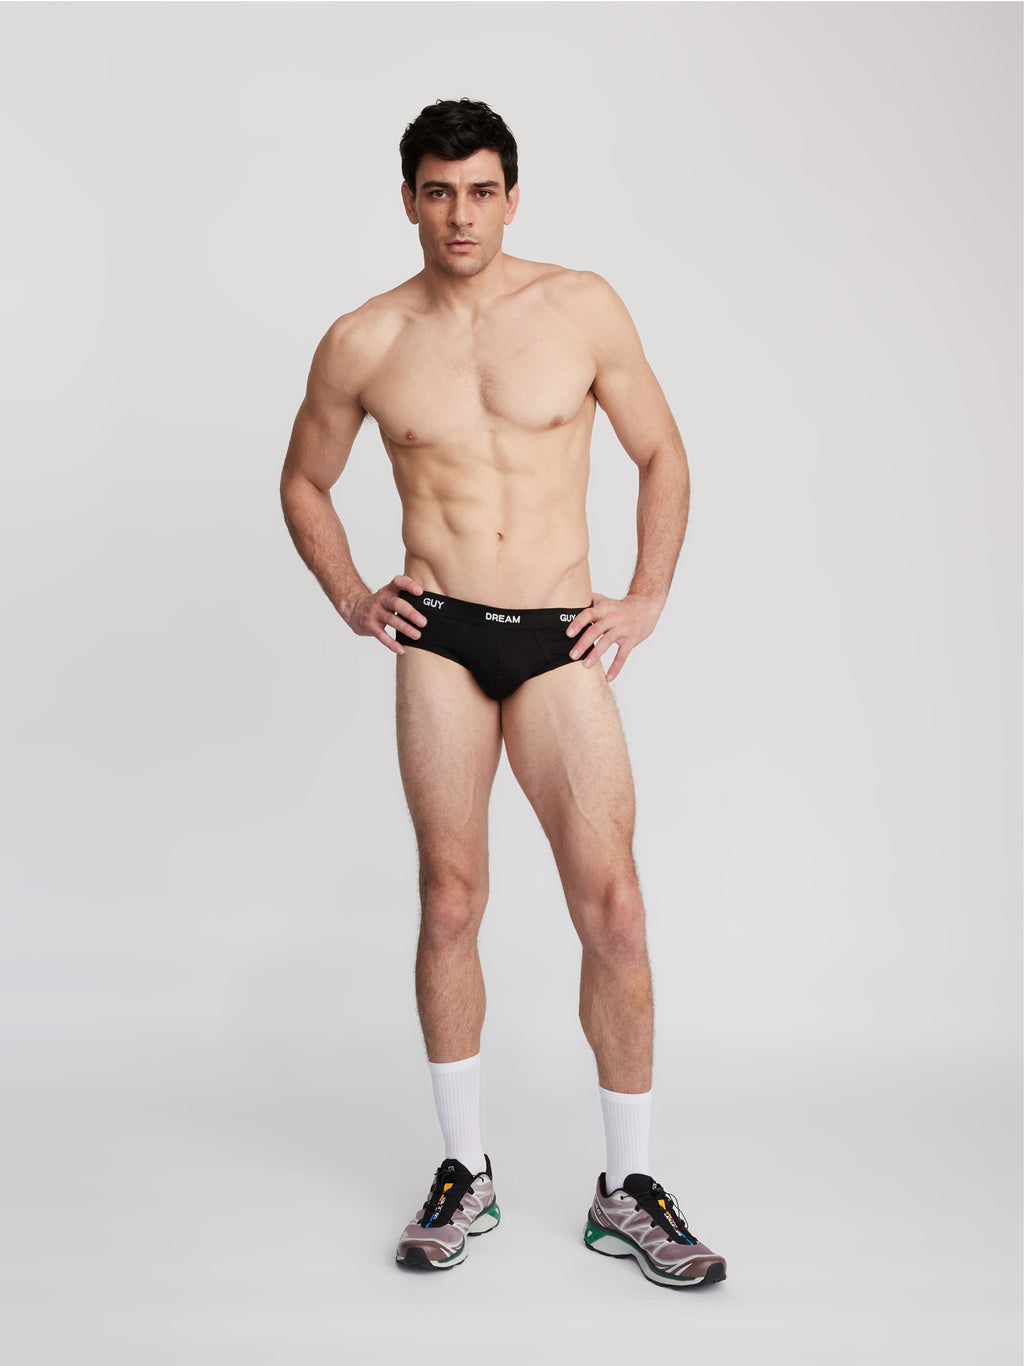 DREAM GUY ORGANIC BRIEF